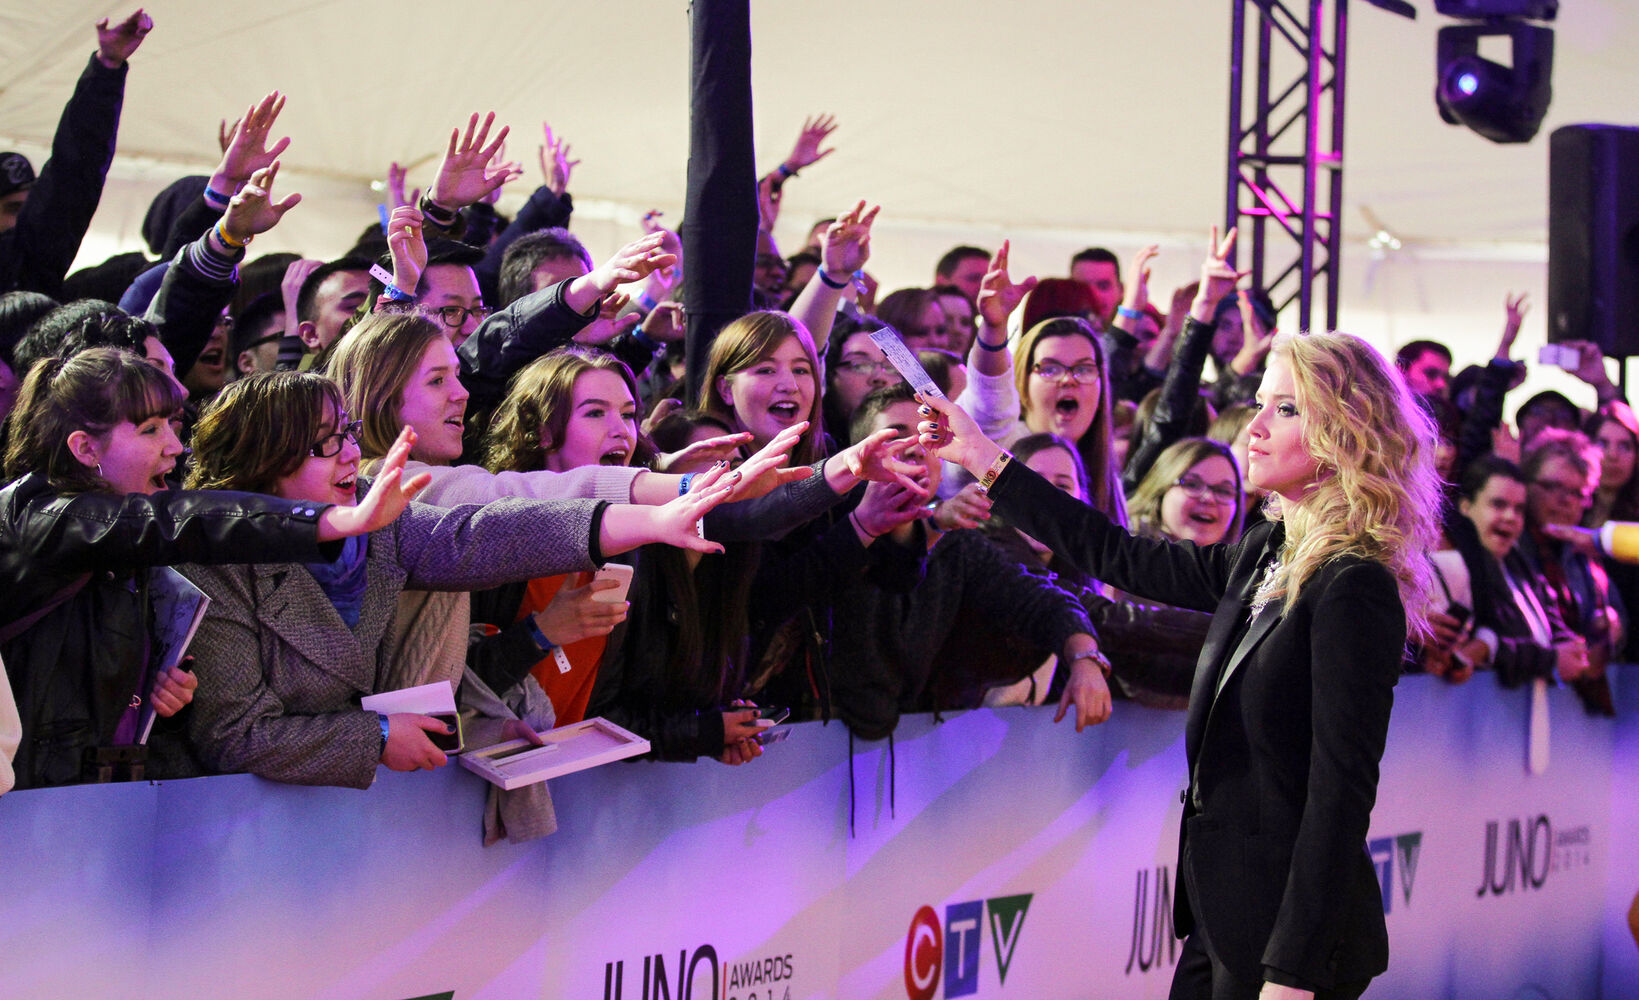 Fans at the Junos 2014 red carpet arrival.